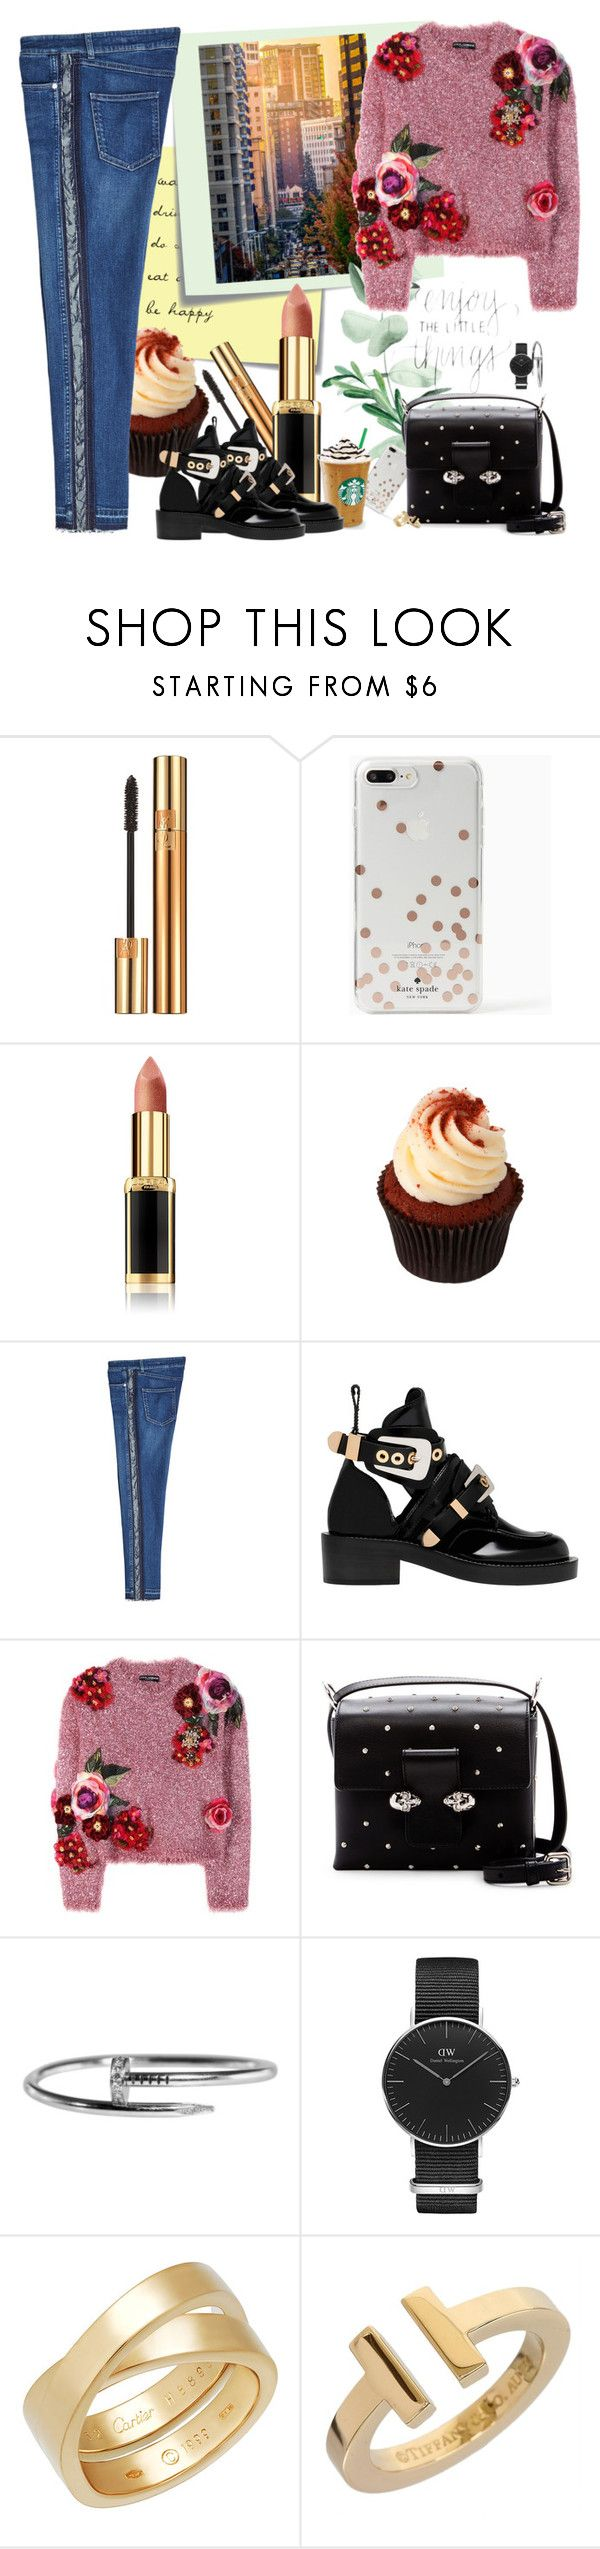 """""""The first 5 days after weekend are the hardest. Waiting for the weekend."""" by katartrina ❤ liked on Polyvore featuring Post-It, Yves Saint Laurent, Kate Spade, L'Oréal Paris, Alexander McQueen, Balenciaga, Dolce&Gabbana, Cartier, Daniel Wellington and Tiffany & Co."""